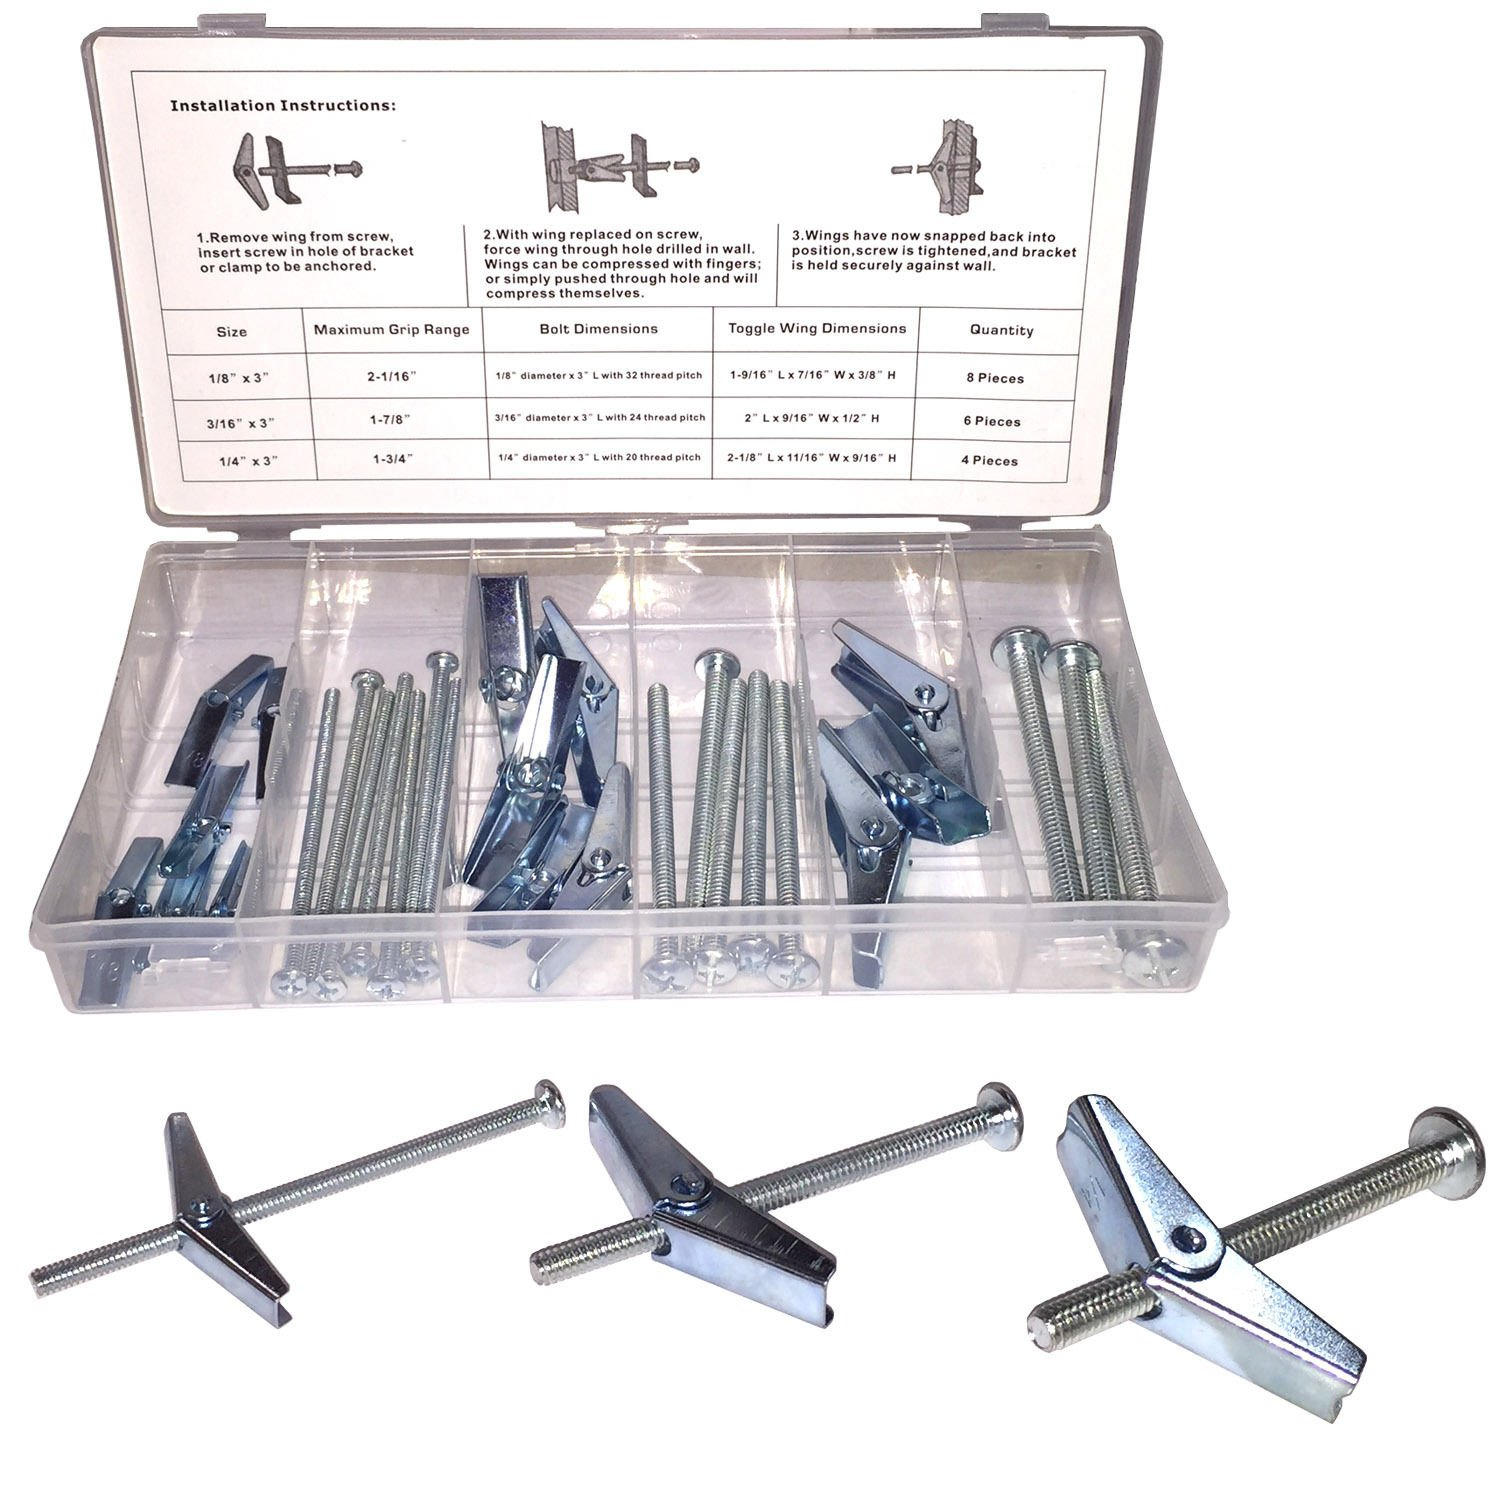 18pc Wing Toggle Bolt Assortment Snap Open Action Zinc Plated Steel Construction